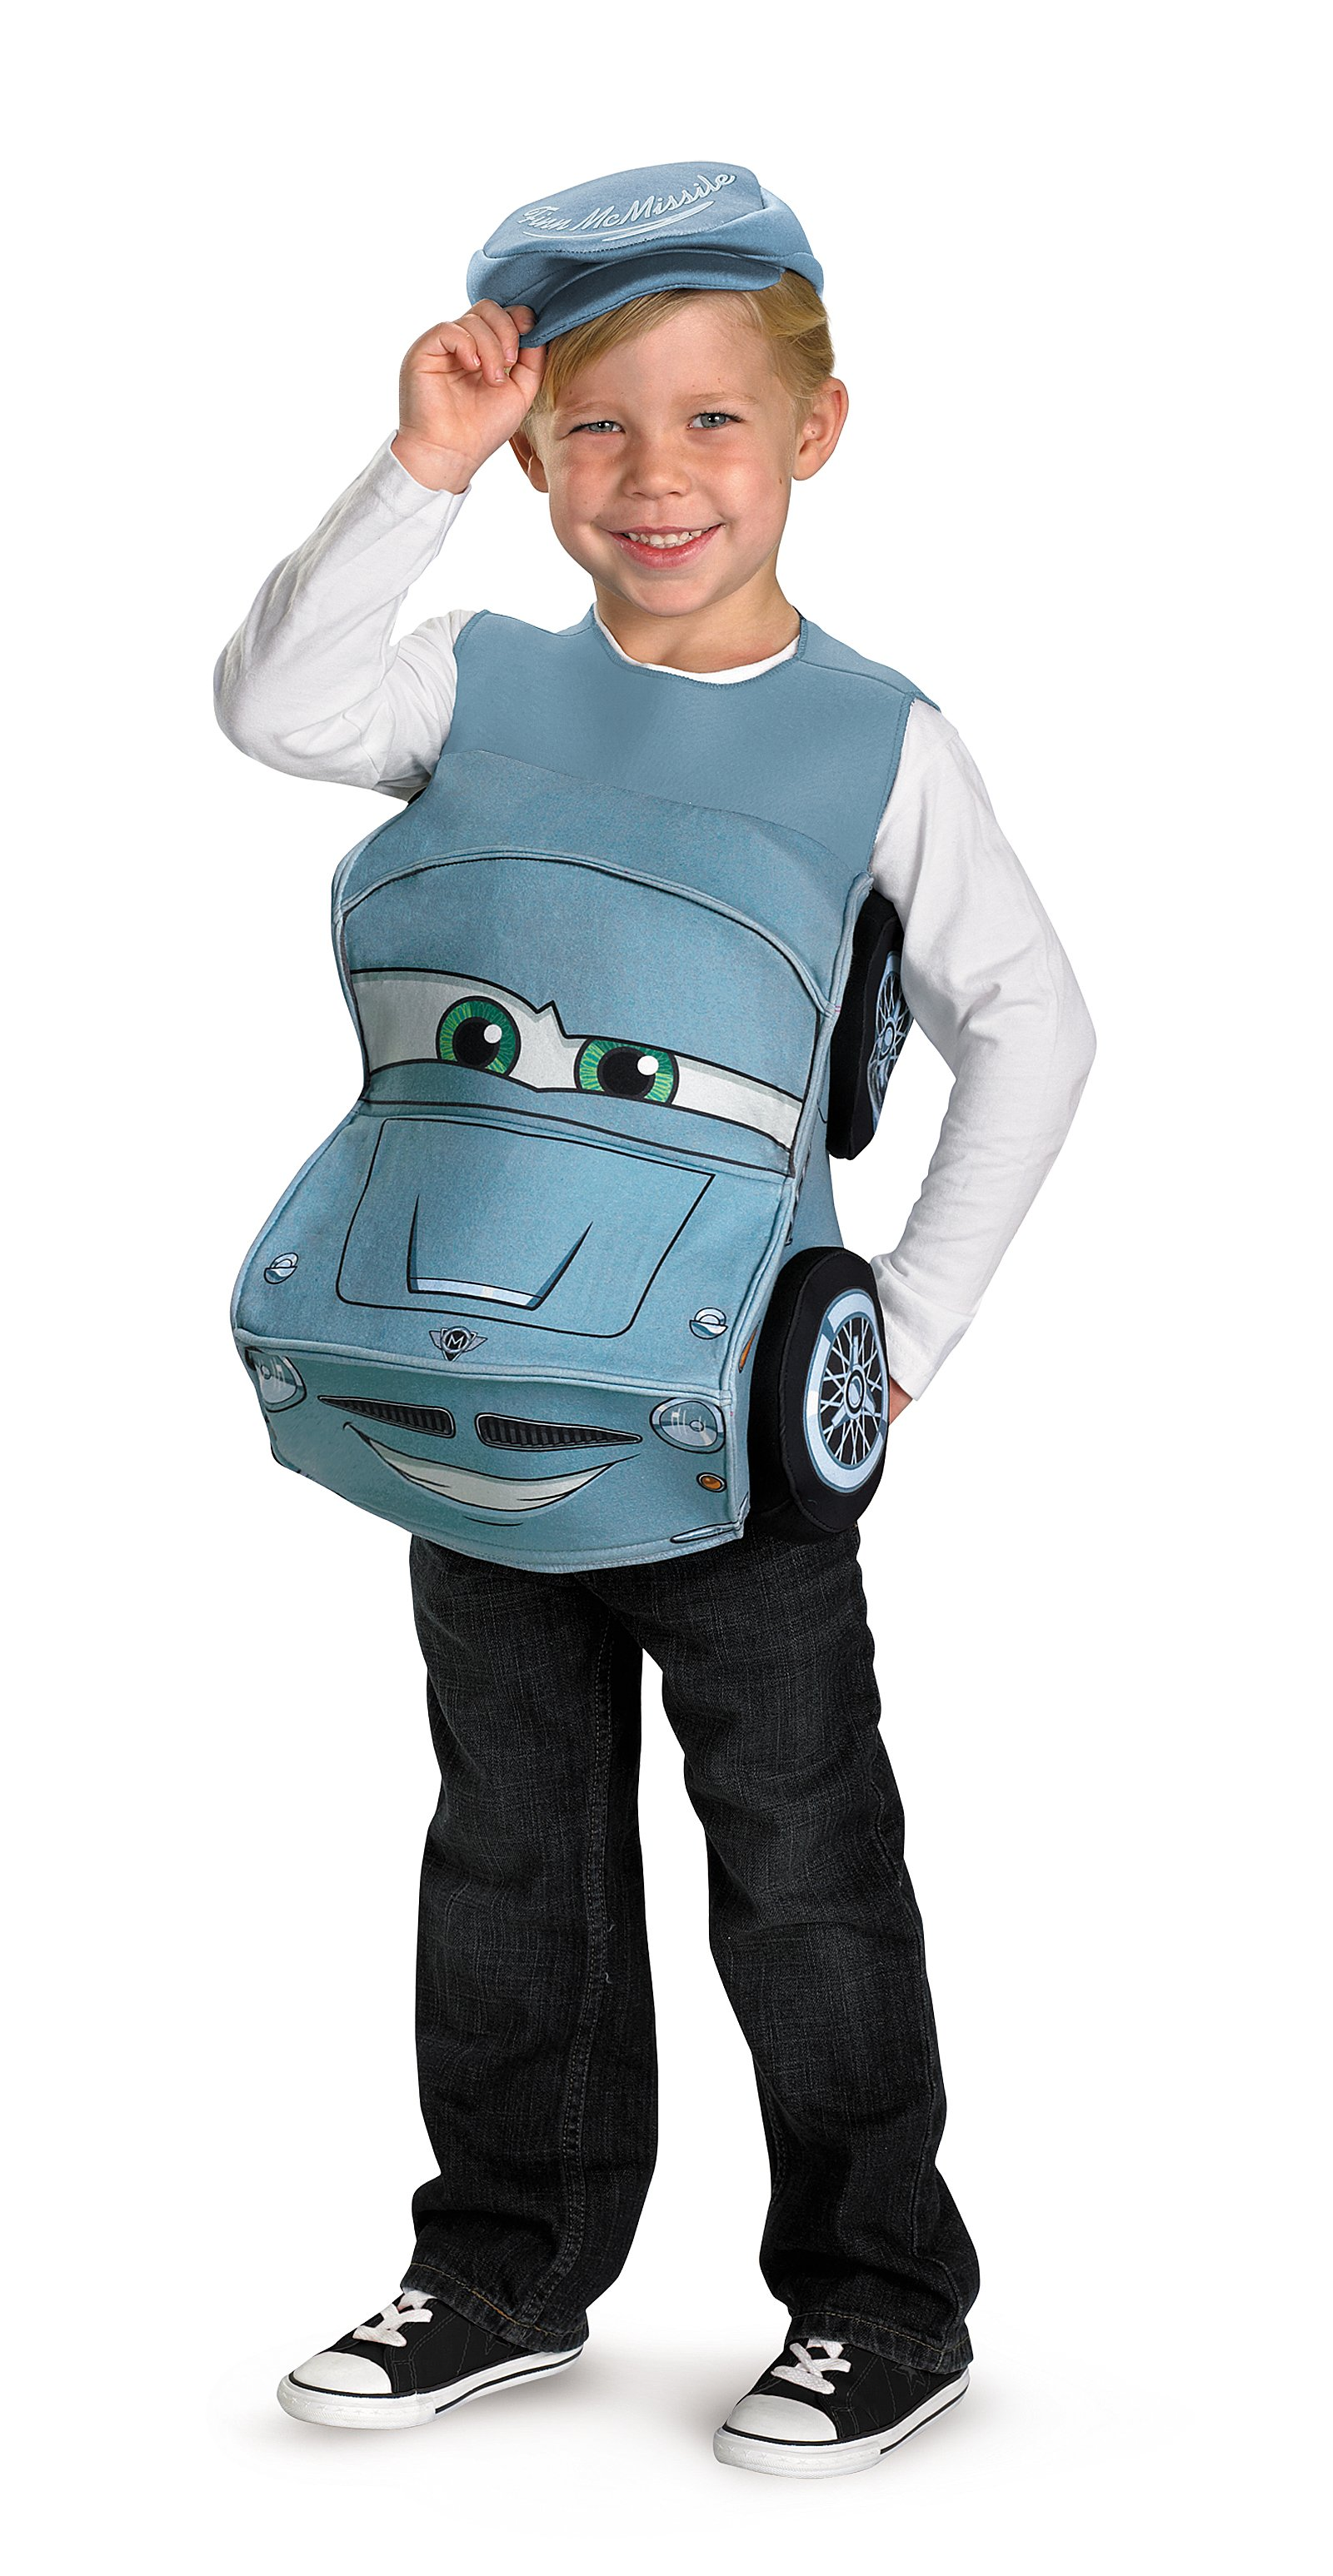 Cars 2 - Finn McMissile Deluxe Child Costume